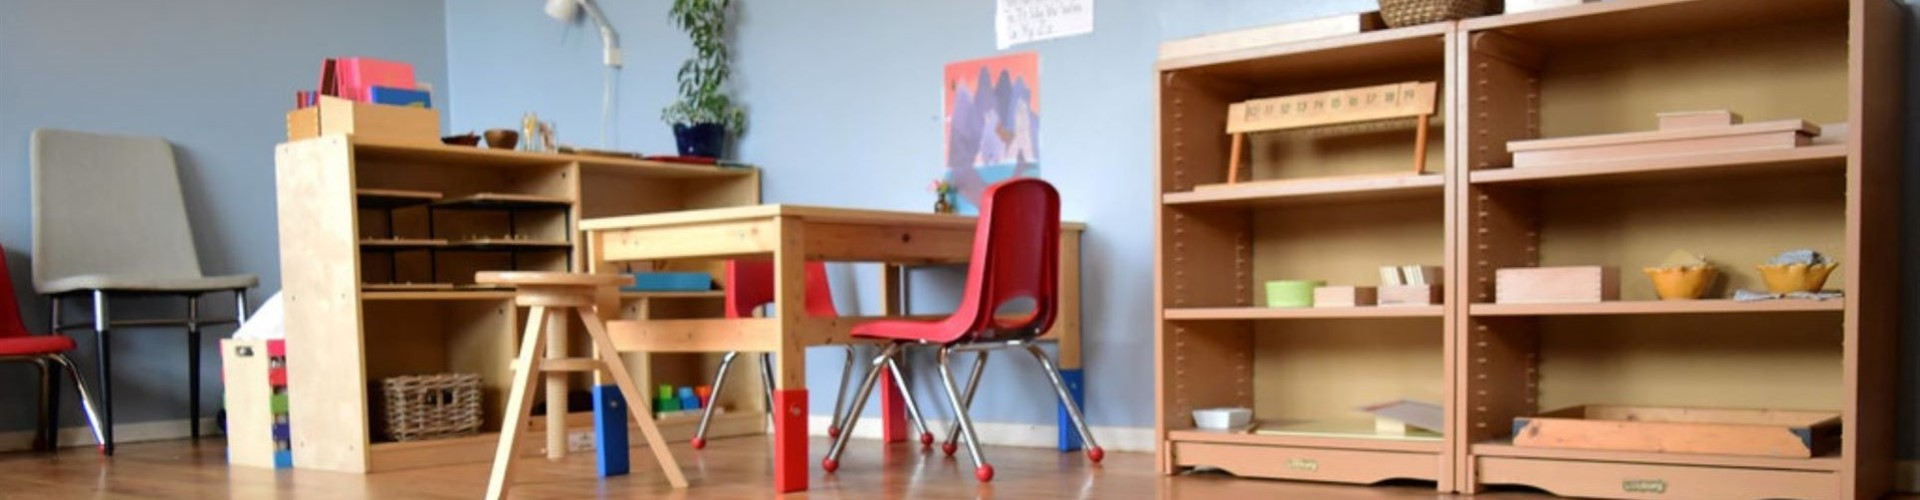 Montessori Classroom with shelves of materials and a table with a red chair and a stool.